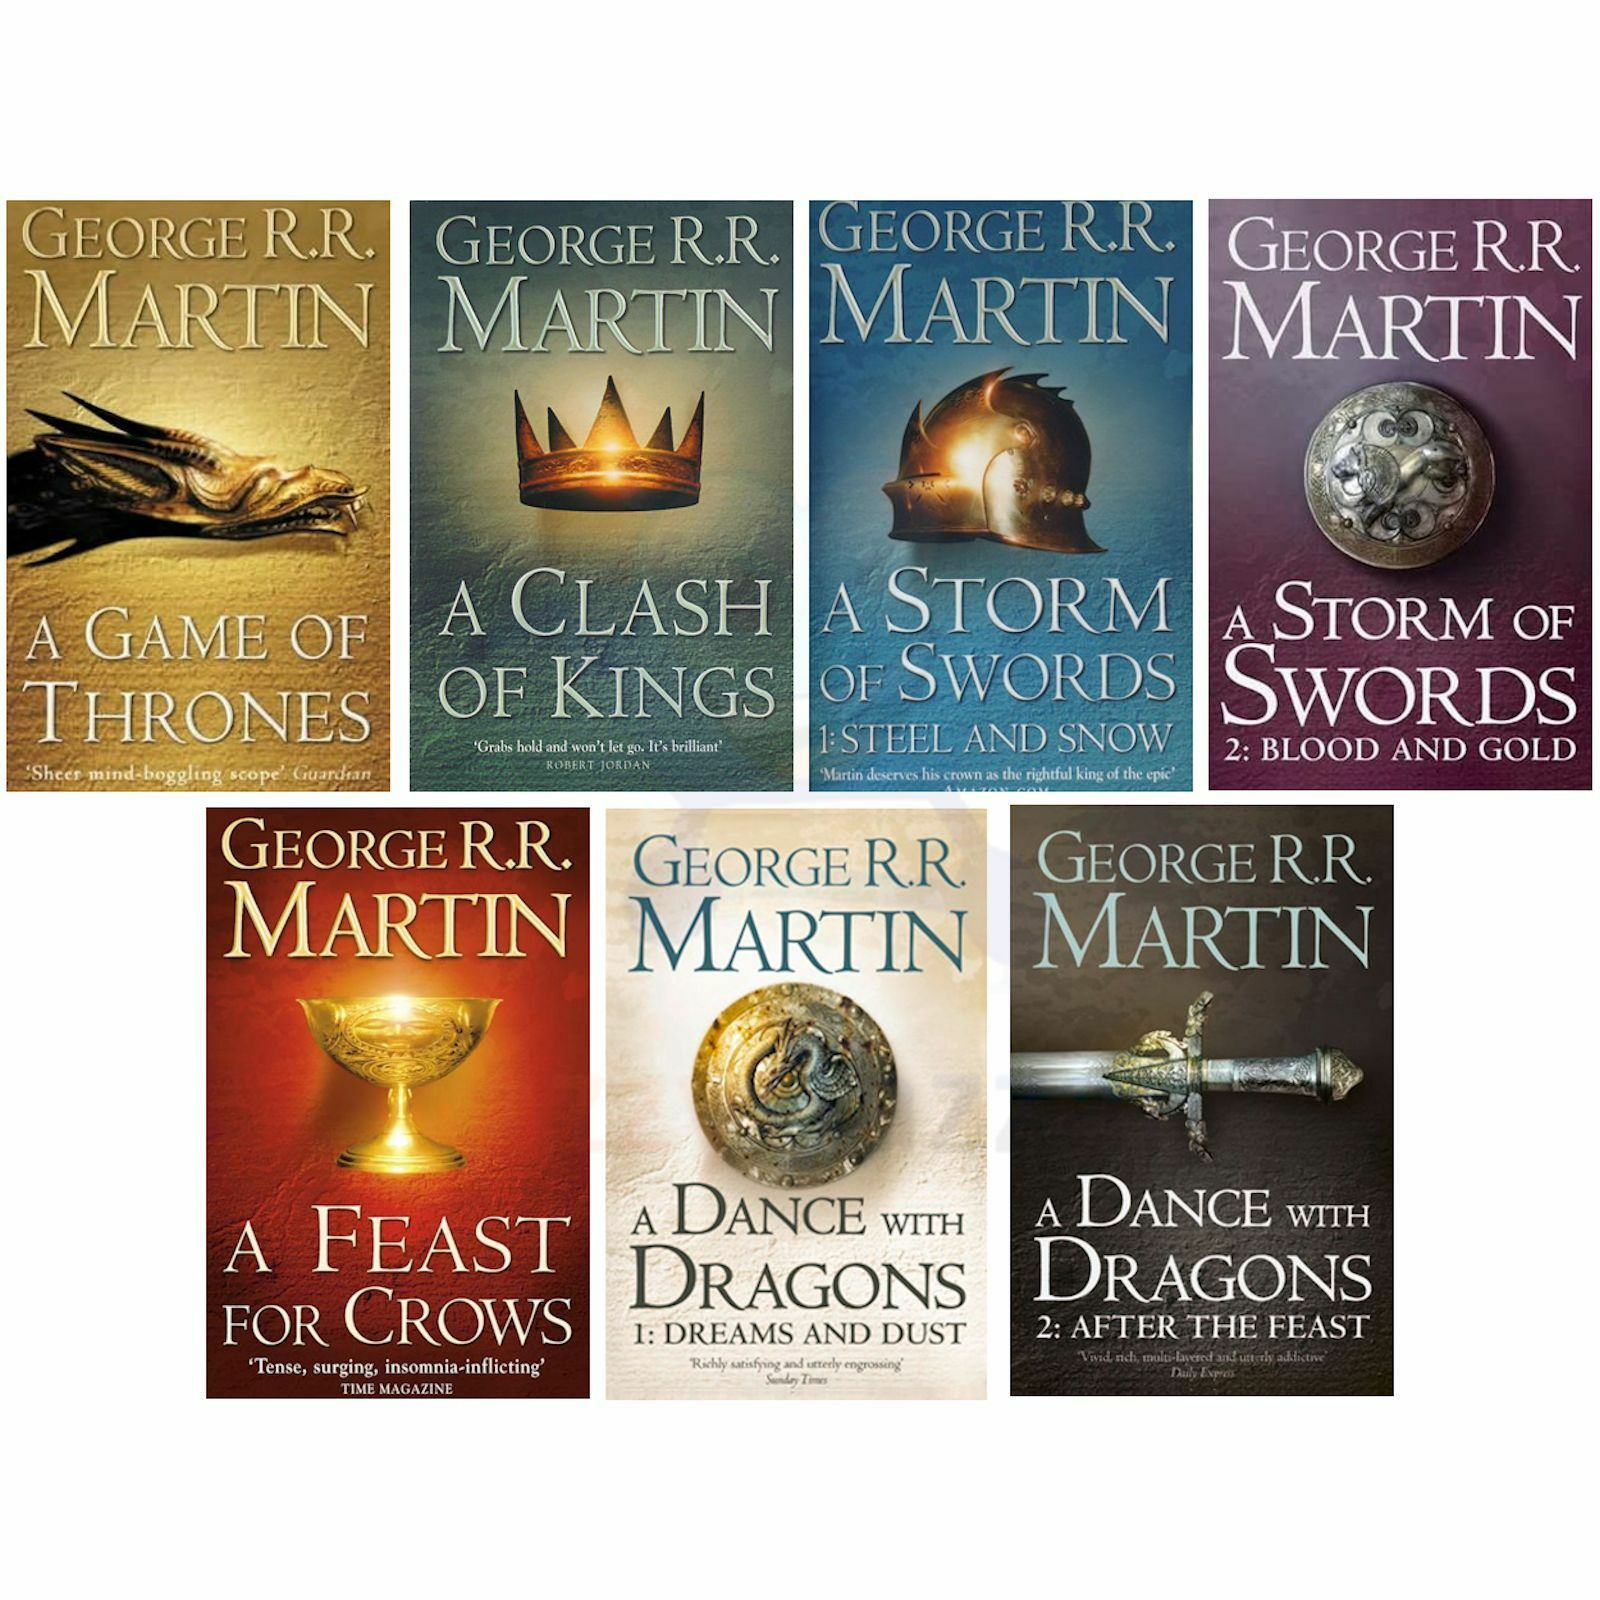 George R R Martin - A Game of Thrones Song of Ice and Fire 7 Books Set New